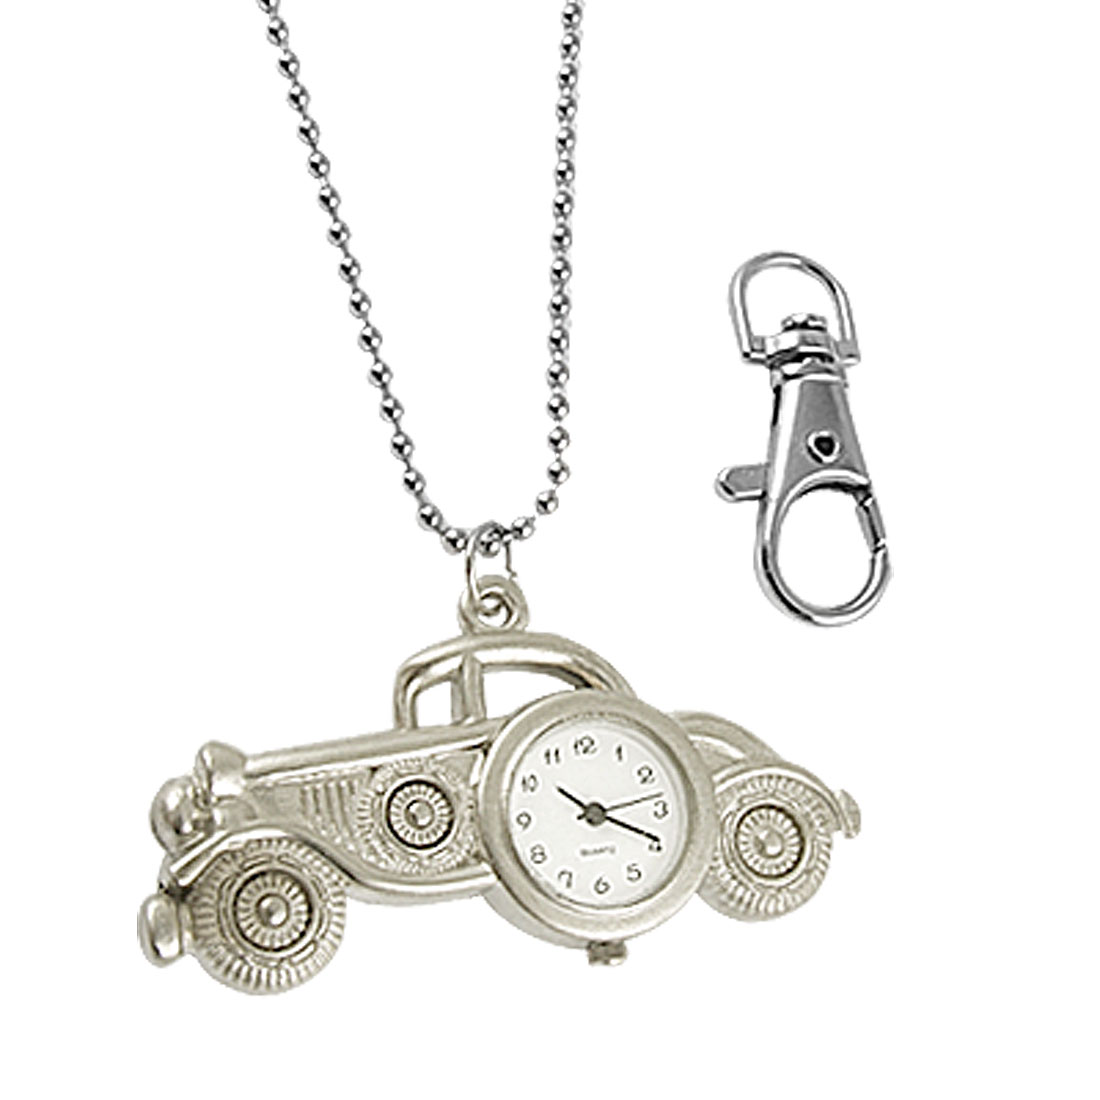 Lady Metal Vintage Car Pendant Necklace Quartz Watch